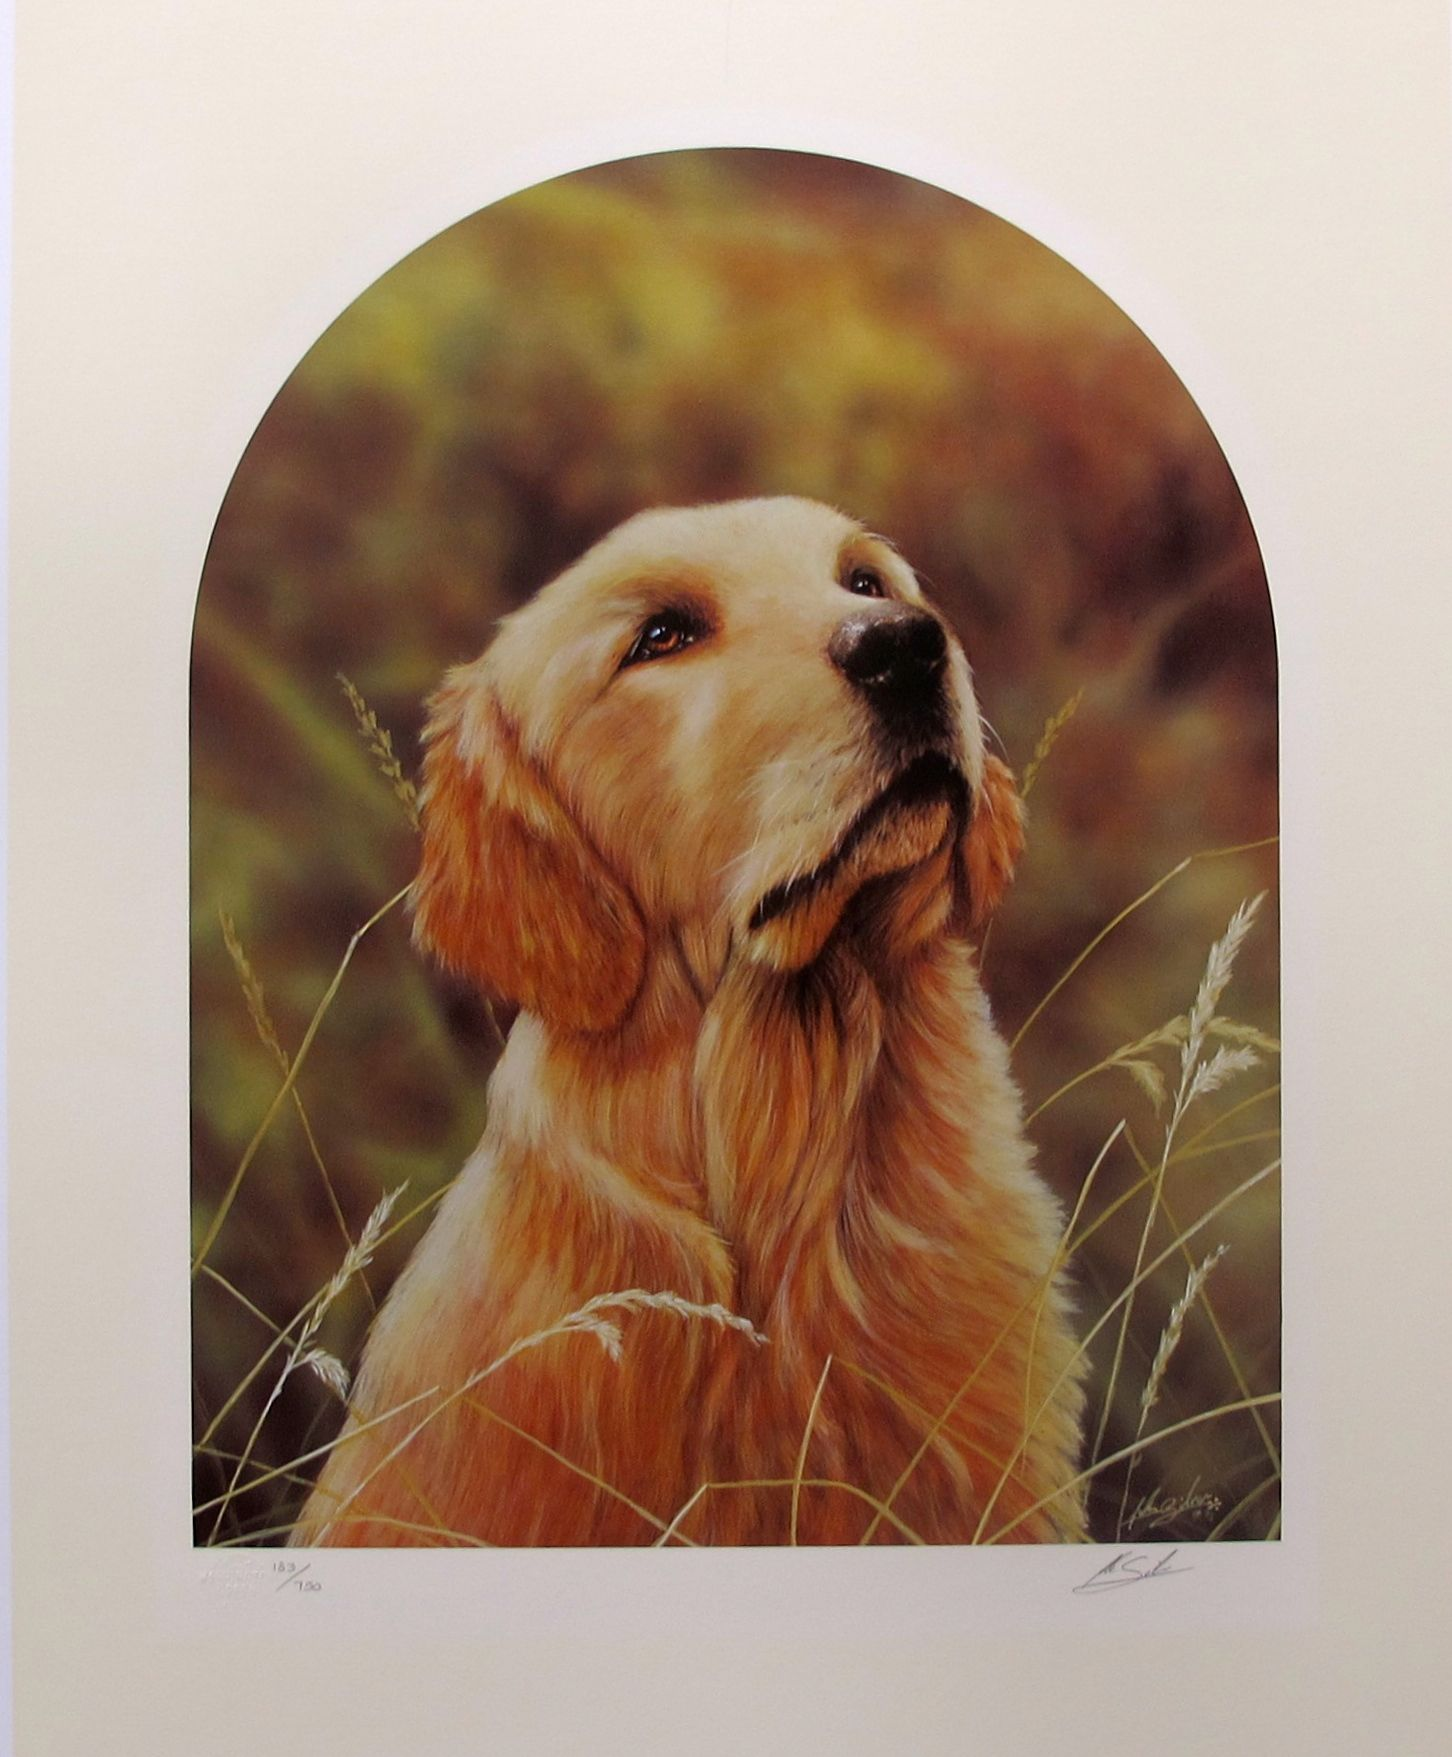 John Silver GOLDEN RETRIEVER Hand Signed Limited Edition Lithograph